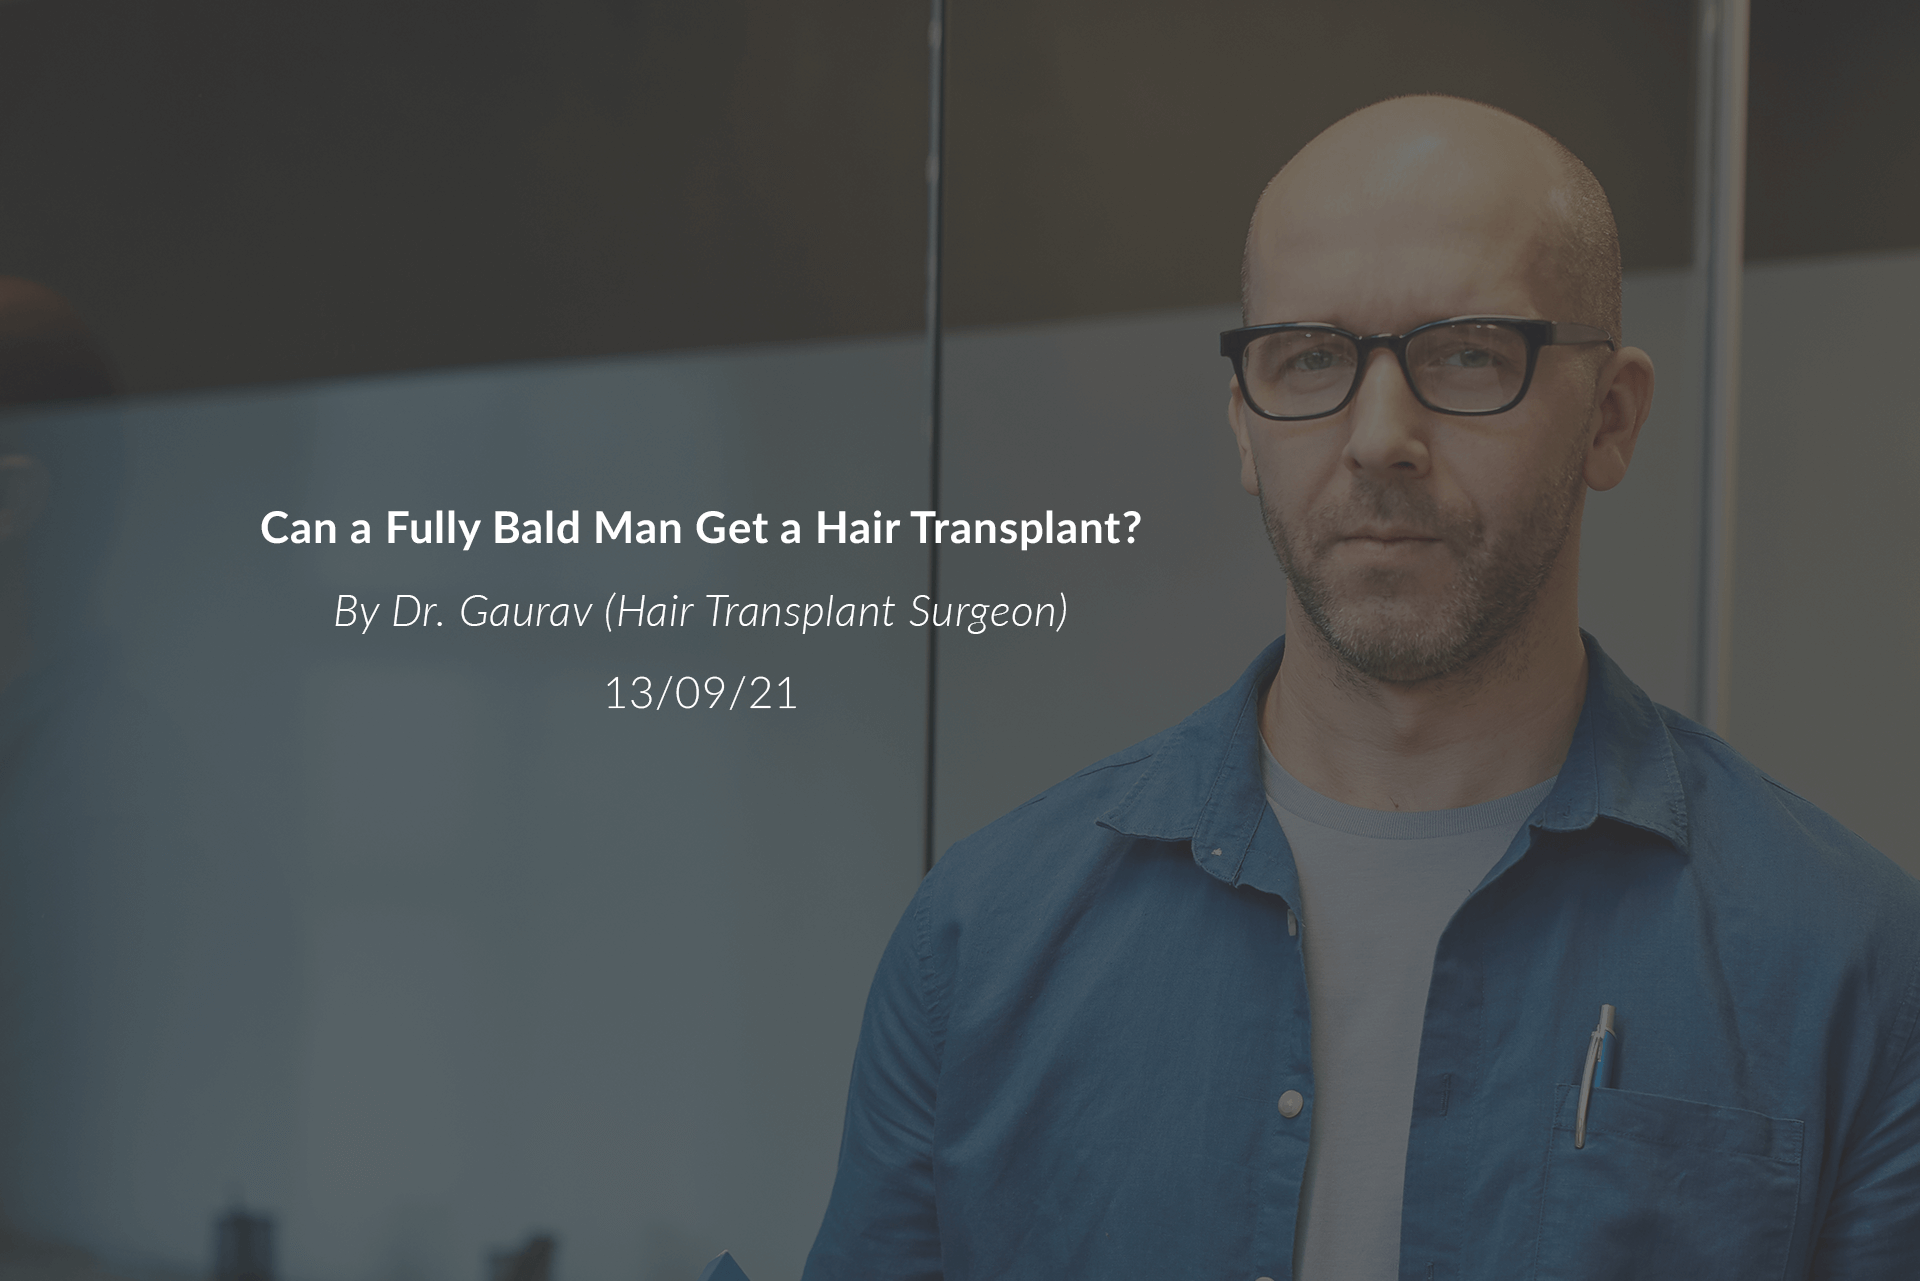 Can a Fully Bald Man Get a Hair Transplant?